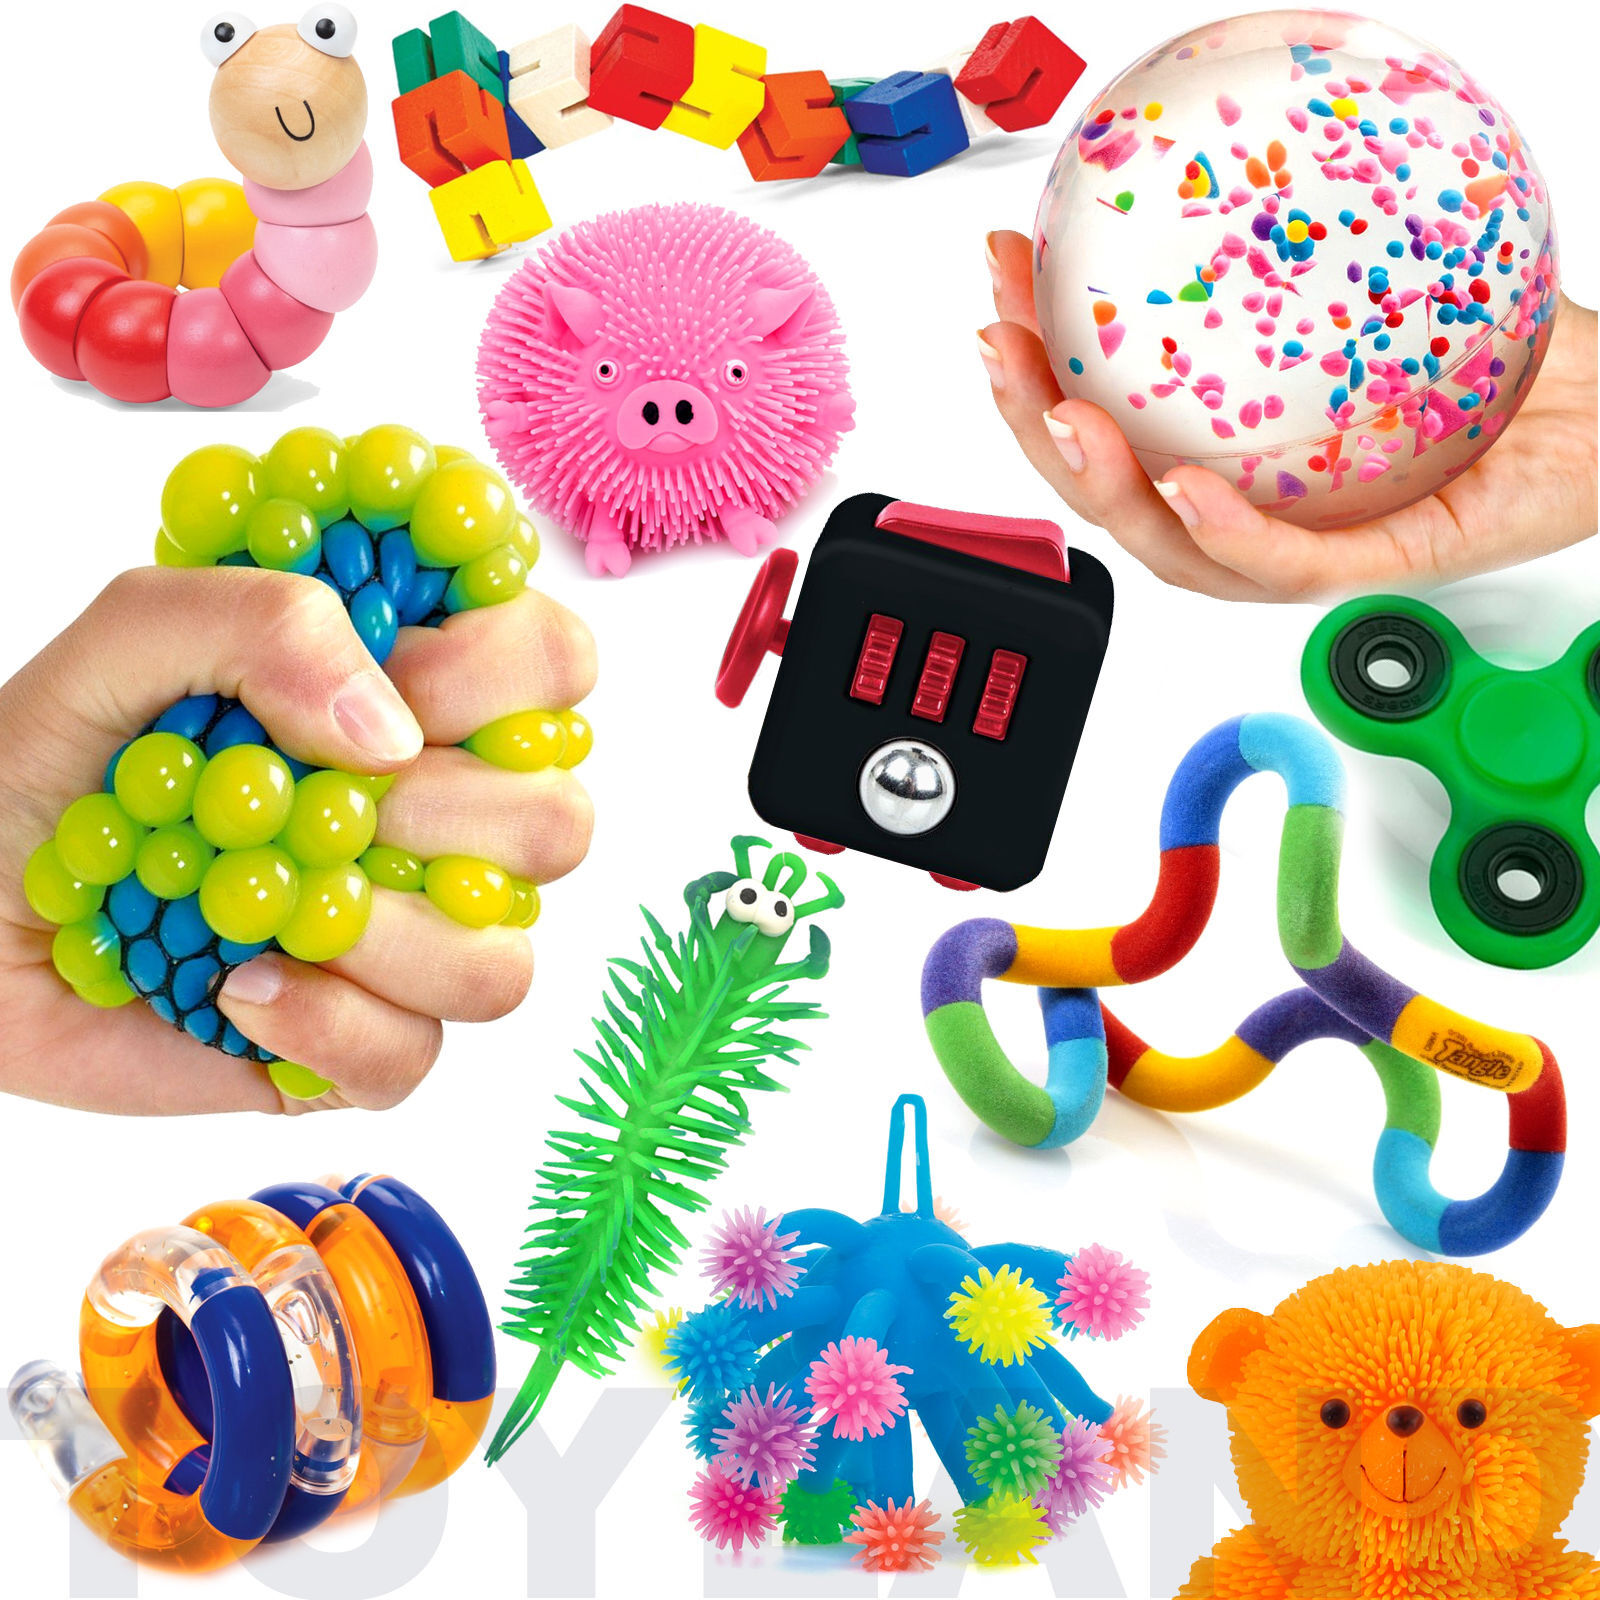 Toys For Autism Special Needs : Fun sensory toys stretch fiddle fidget stress autism adhd